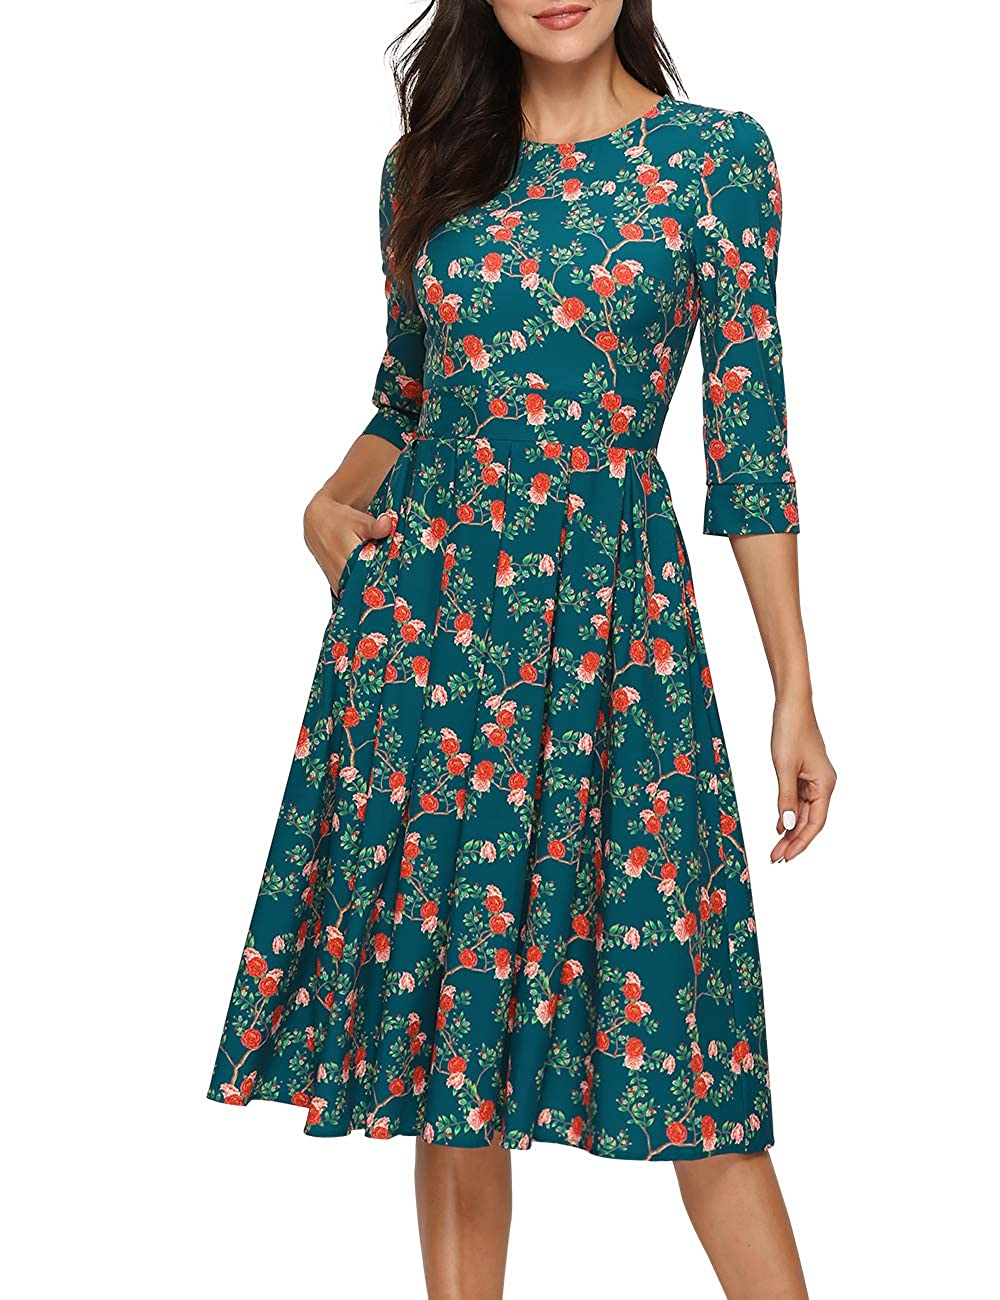 500 Vintage Style Dresses for Sale | Vintage Inspired Dresses Simple Flavor Womens Floral Vintage Dress Elegant Midi Evening Dress 3/4 Sleeves $26.99 AT vintagedancer.com